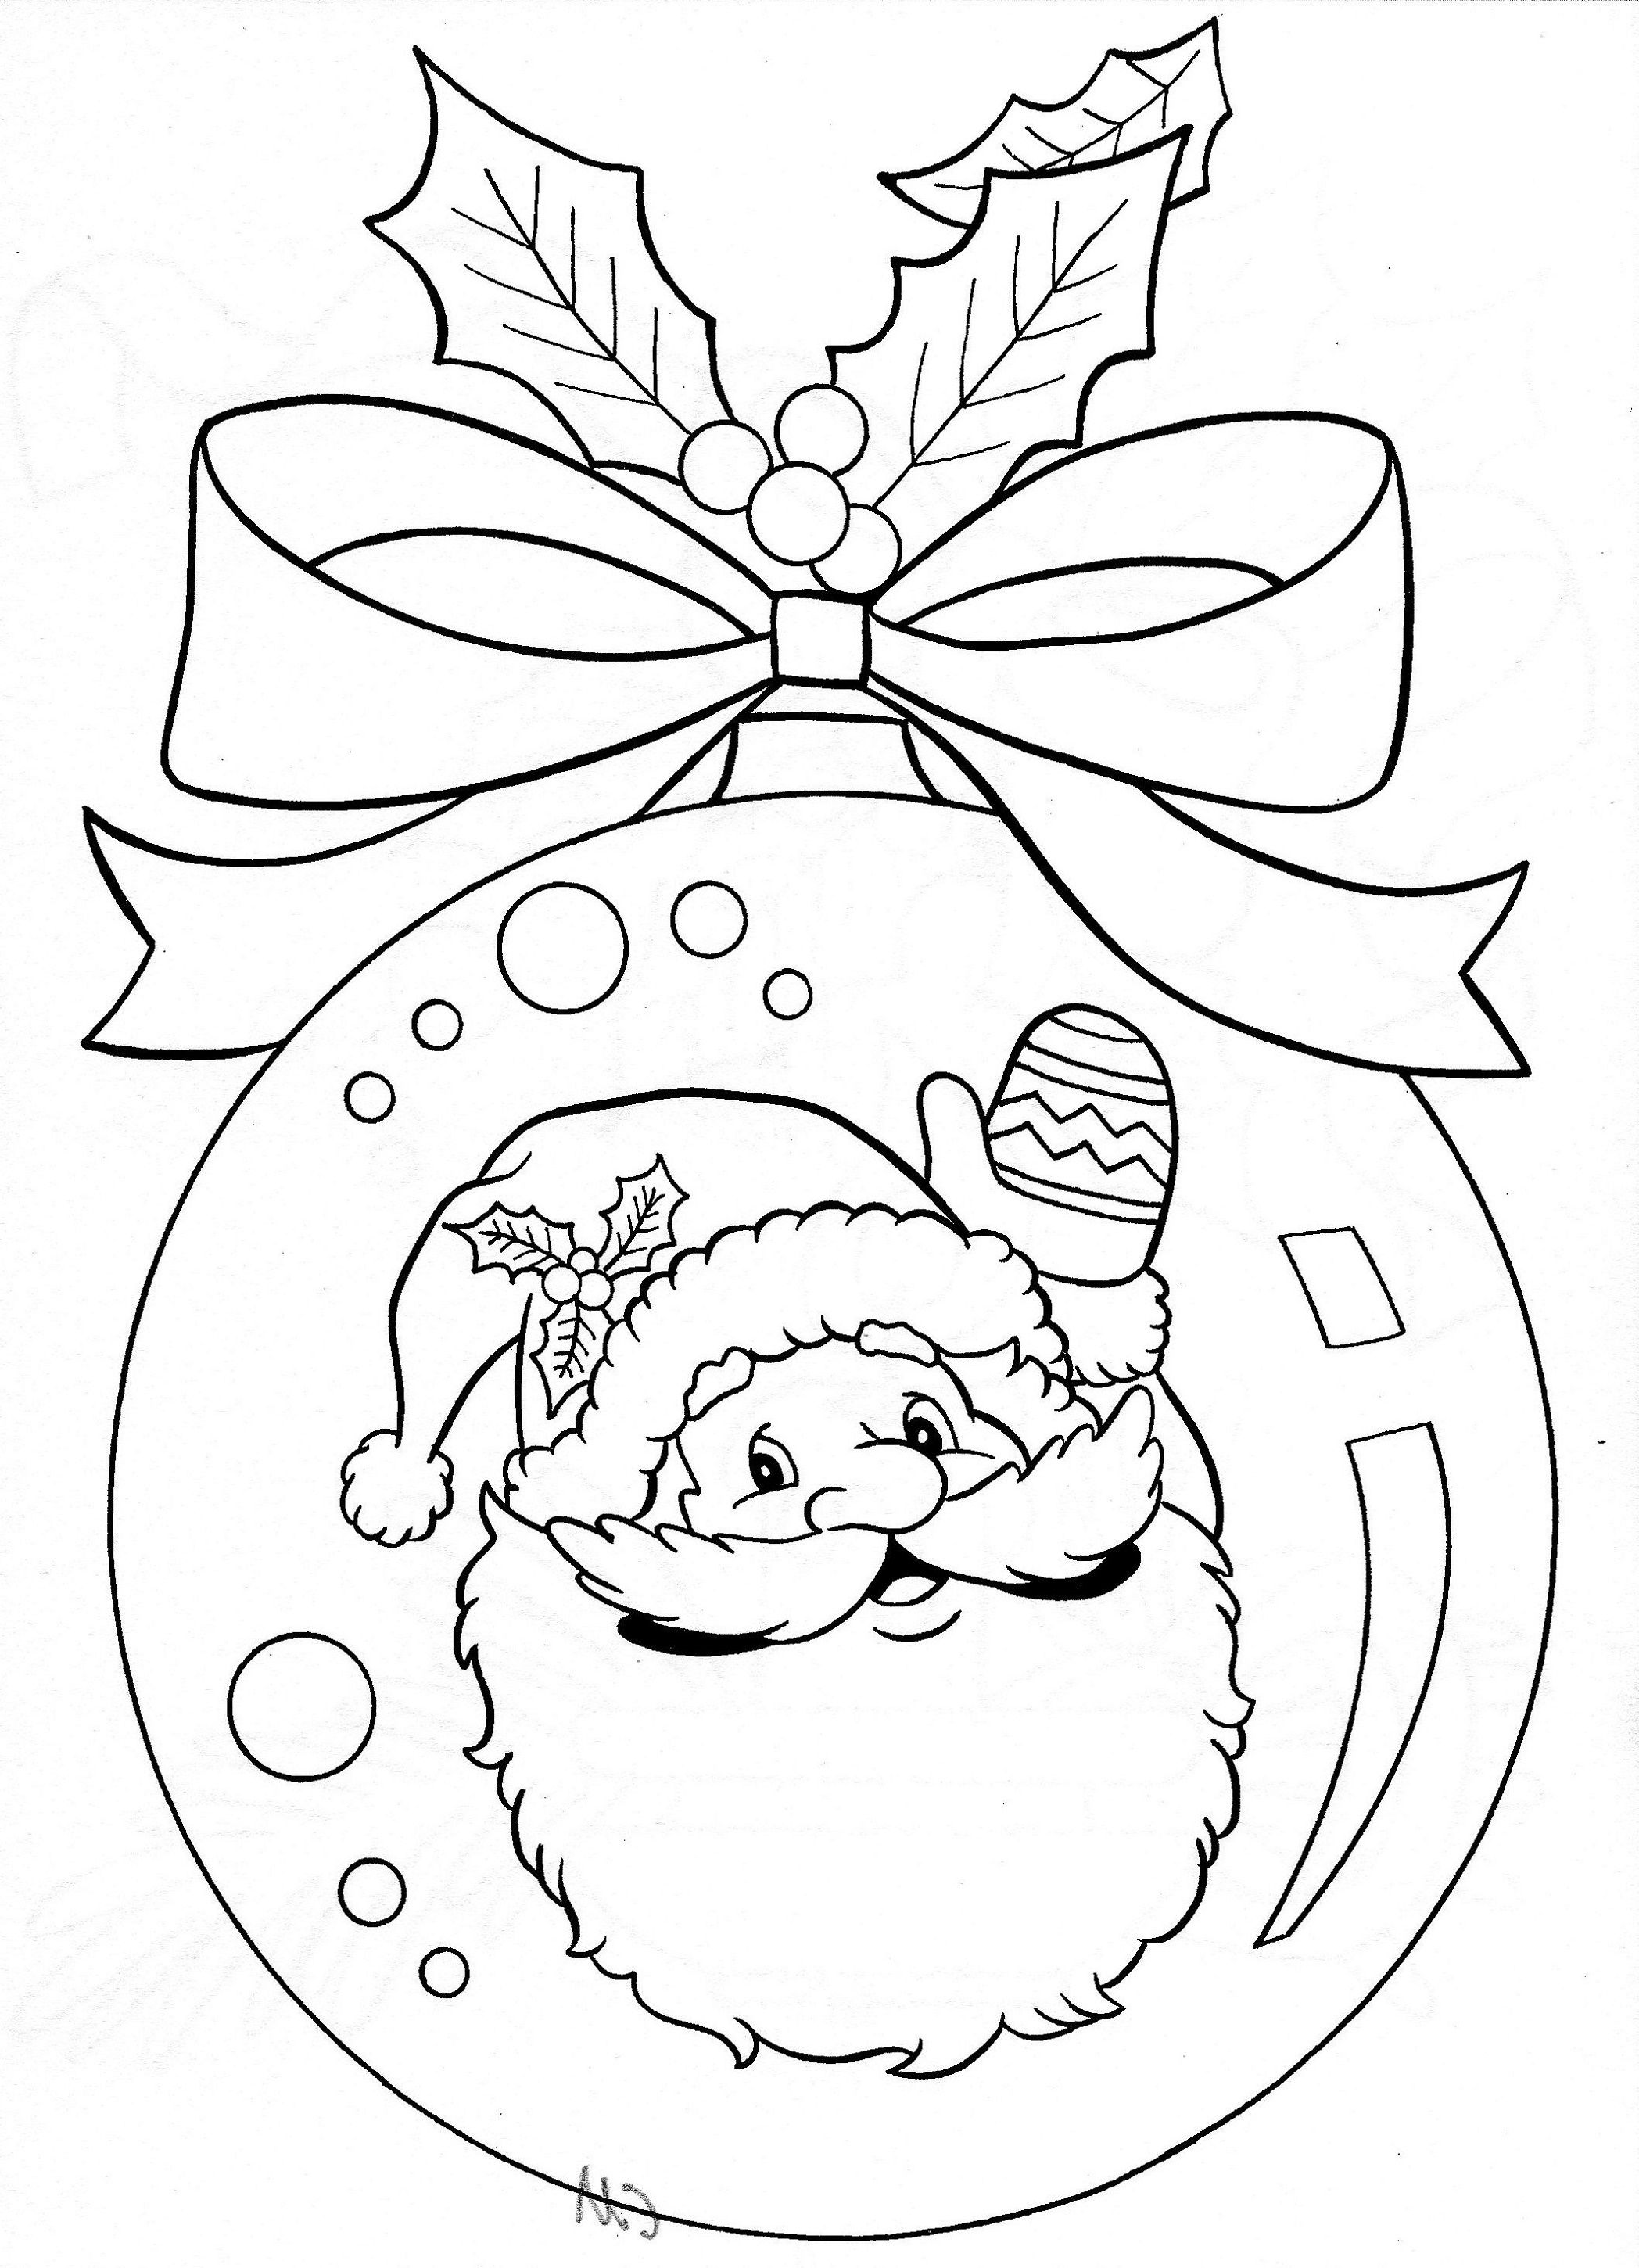 Christmas Mistletoe Coloring Pages For Kids K5 Worksheets Free Christmas Coloring Pages Christmas Ornament Coloring Page Christmas Colors